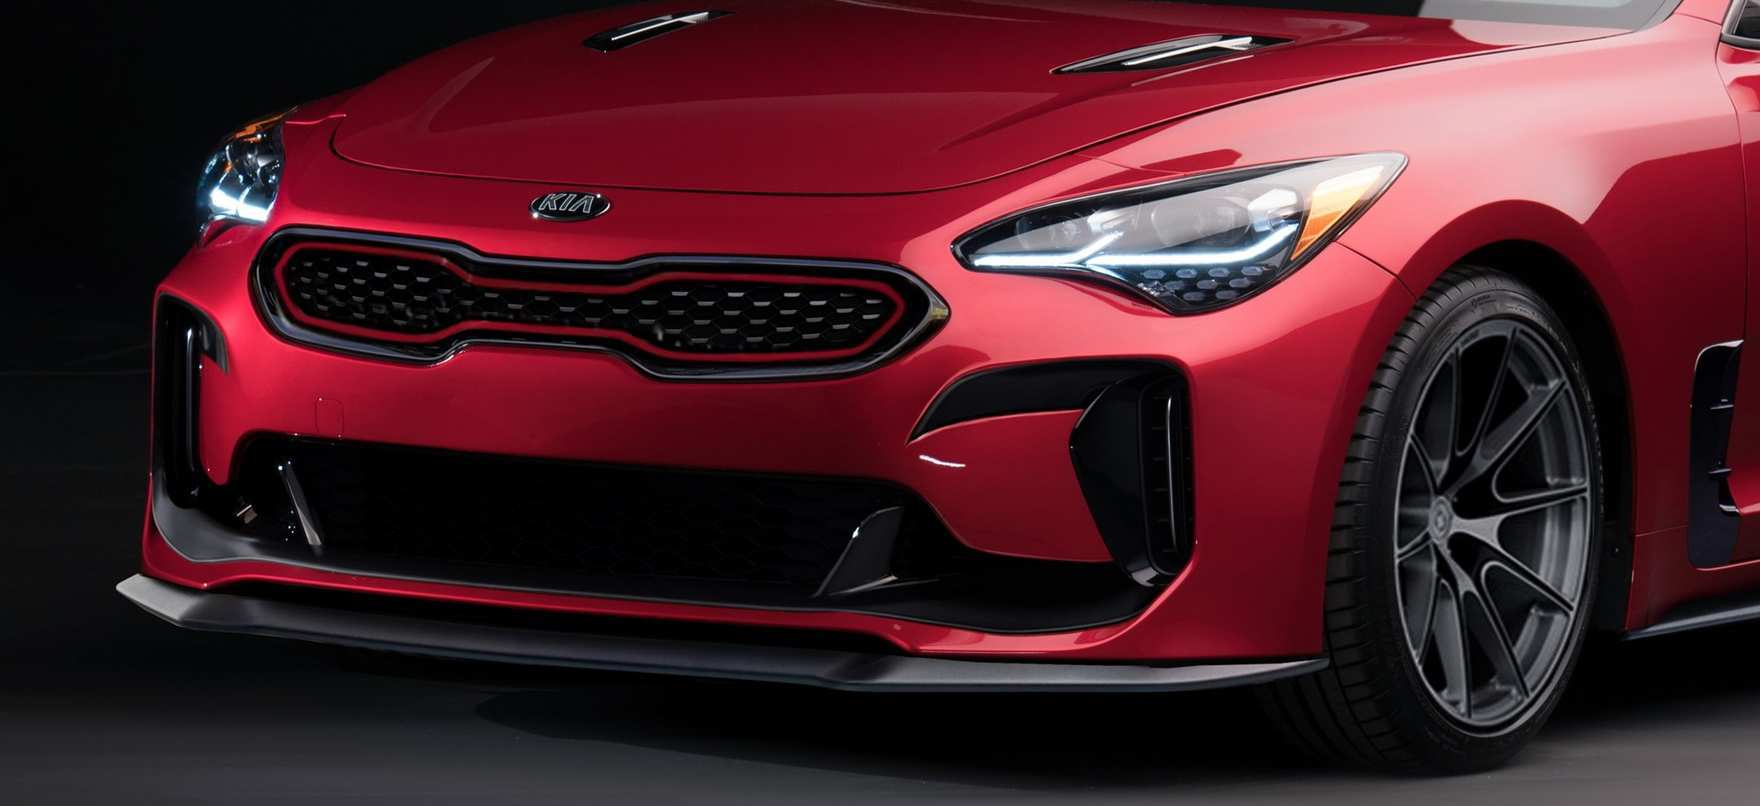 43 Gallery of 2019 Kia Stinger Gt Plus Reviews by 2019 Kia Stinger Gt Plus